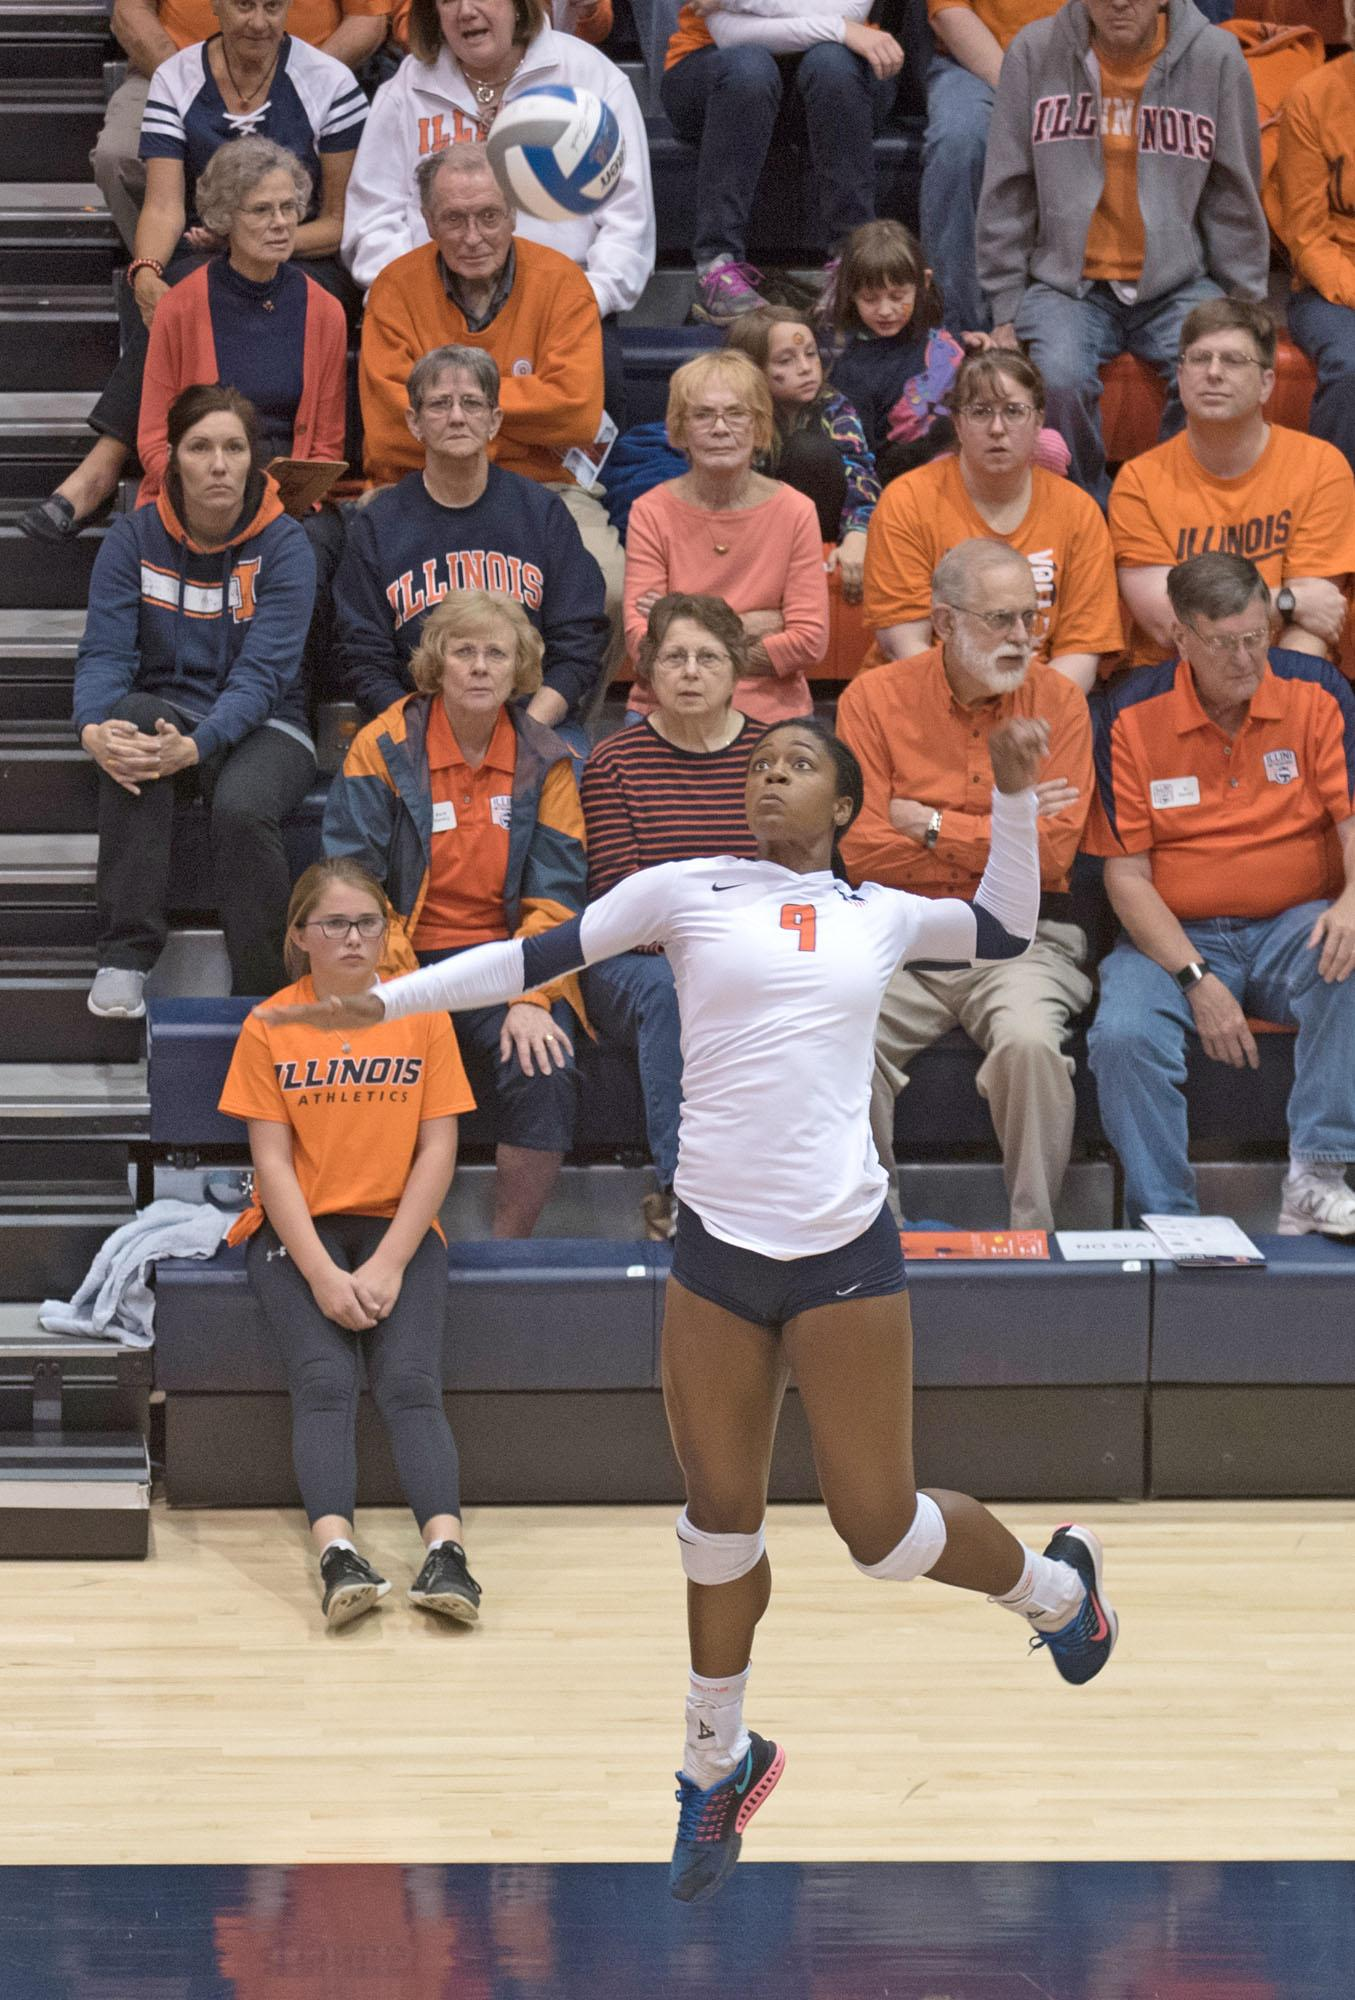 Naya Crittenden jumps to spike the ball against Iowa last year at Huff Hall. Illinois won 3-0.